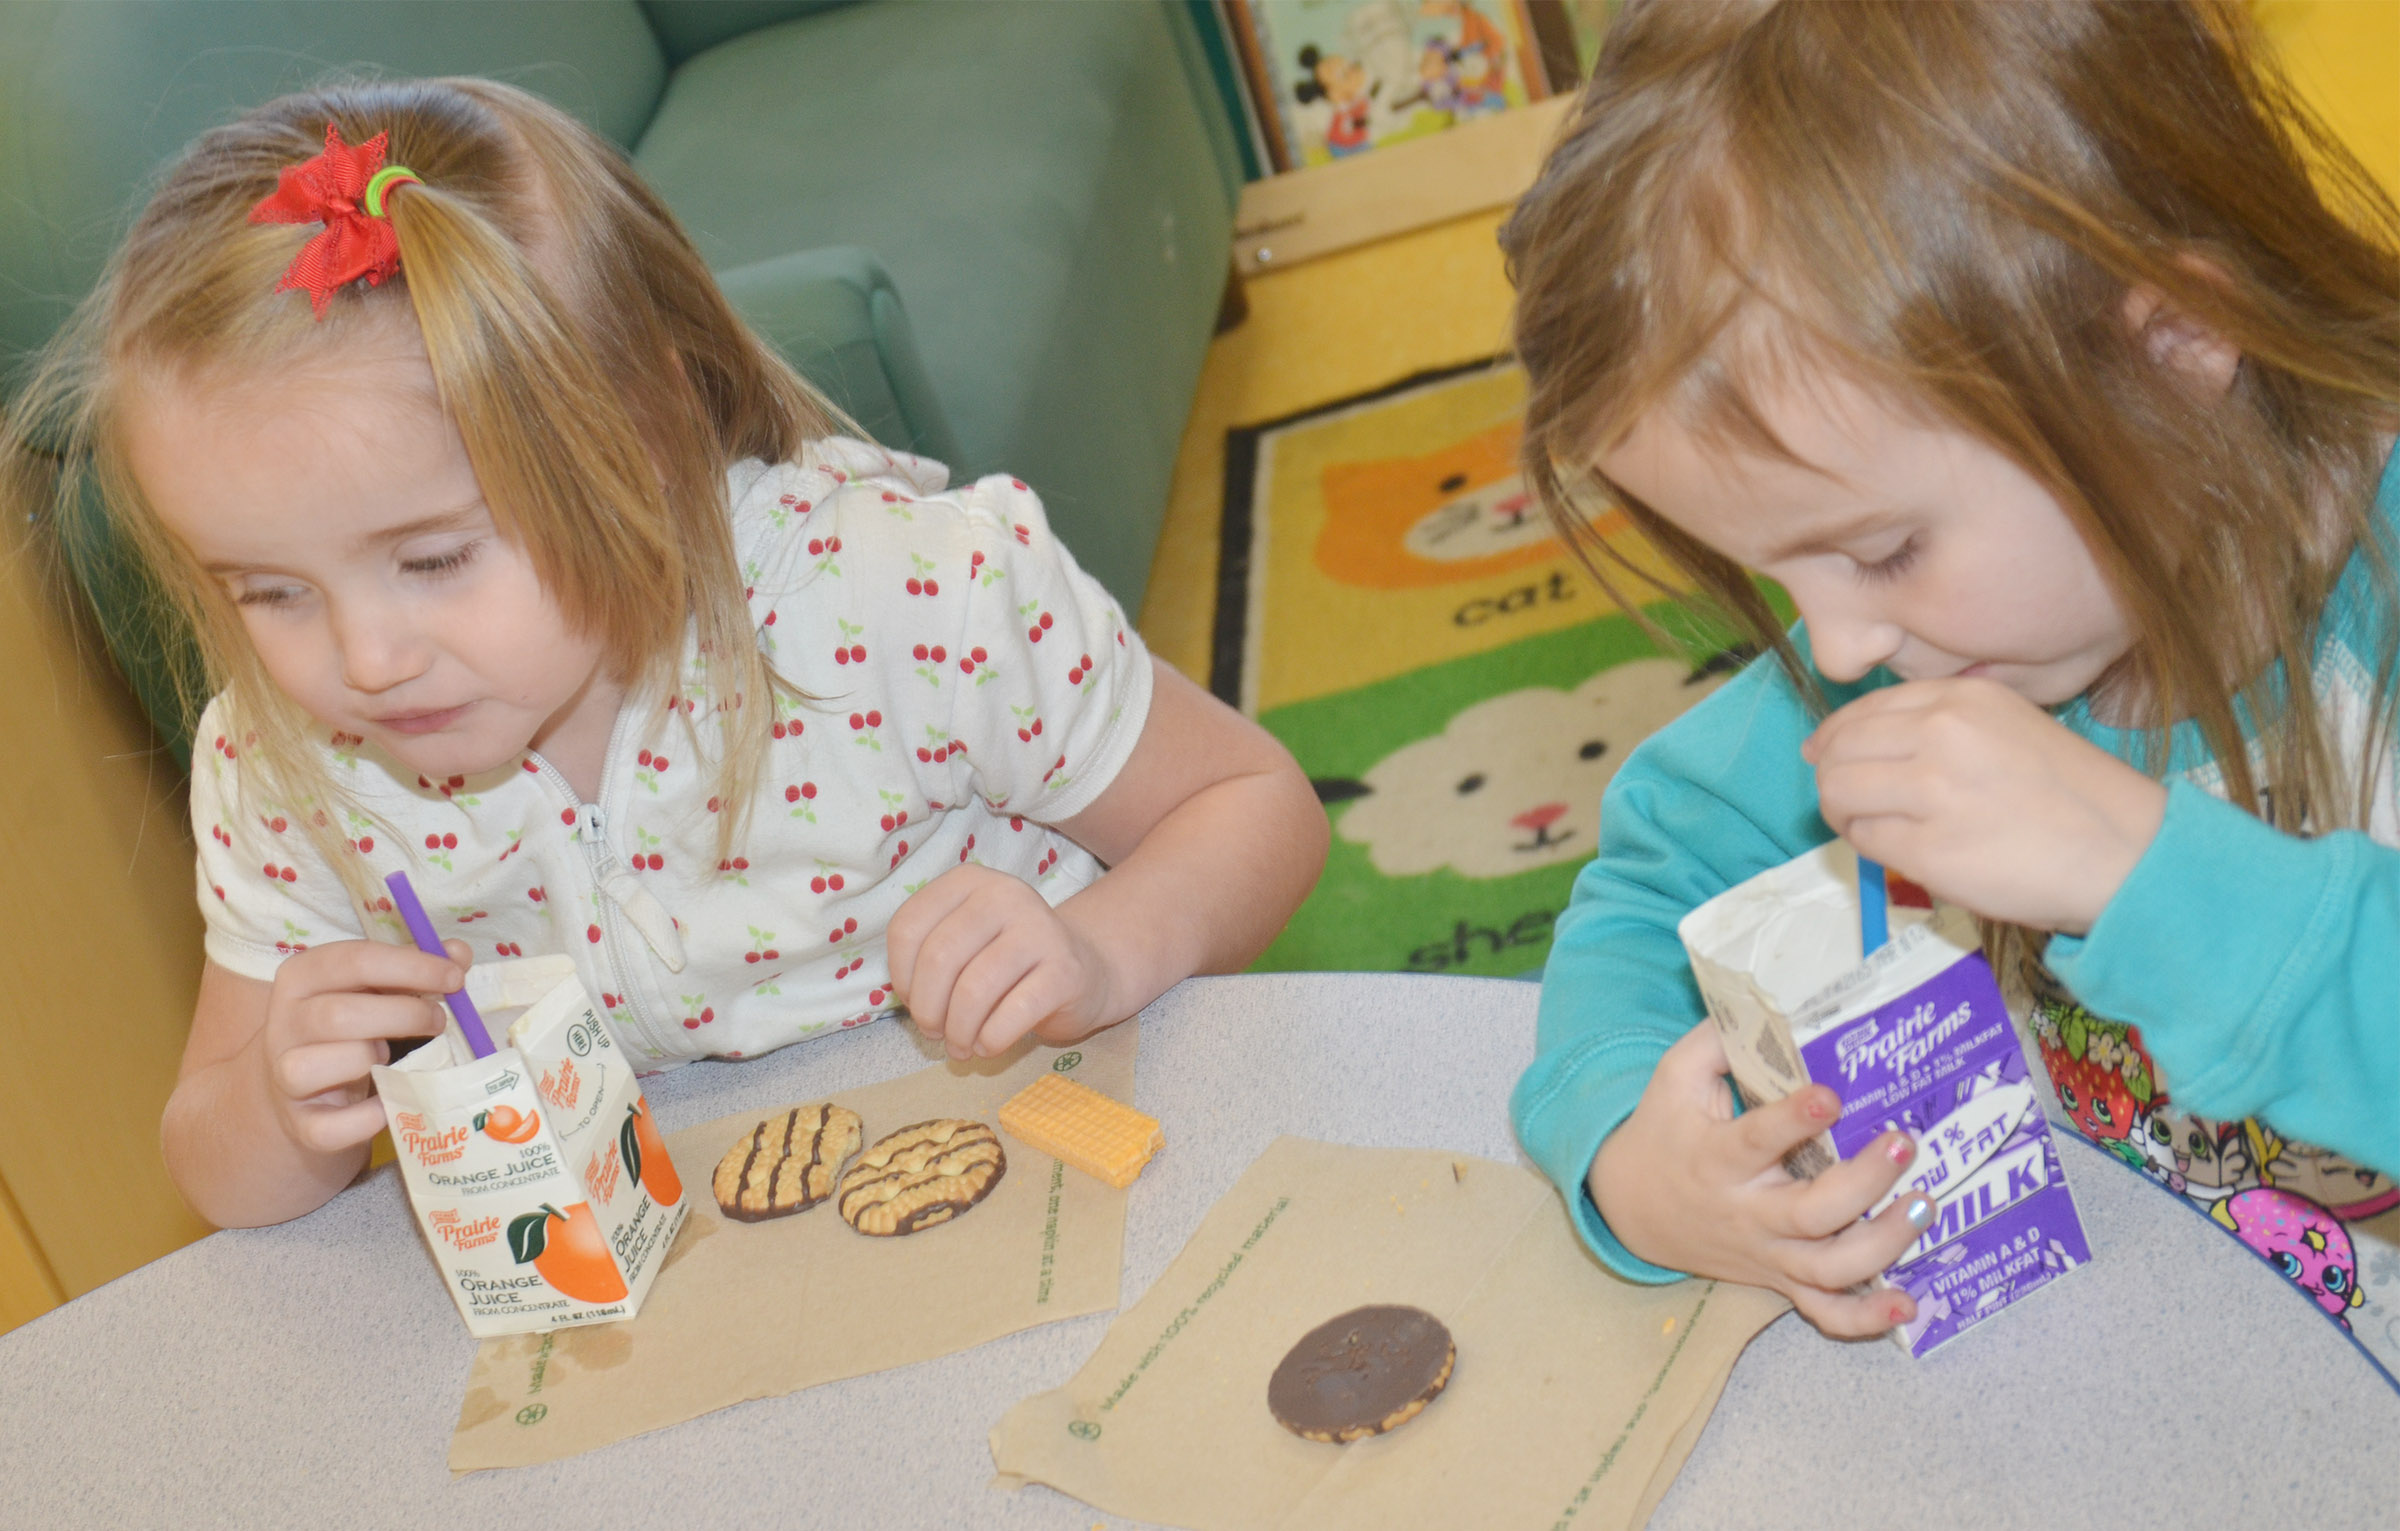 CES preschool students Trinity Dye, at left, and Tabitha Leggett enjoy their special snacks on the 100th day of school.